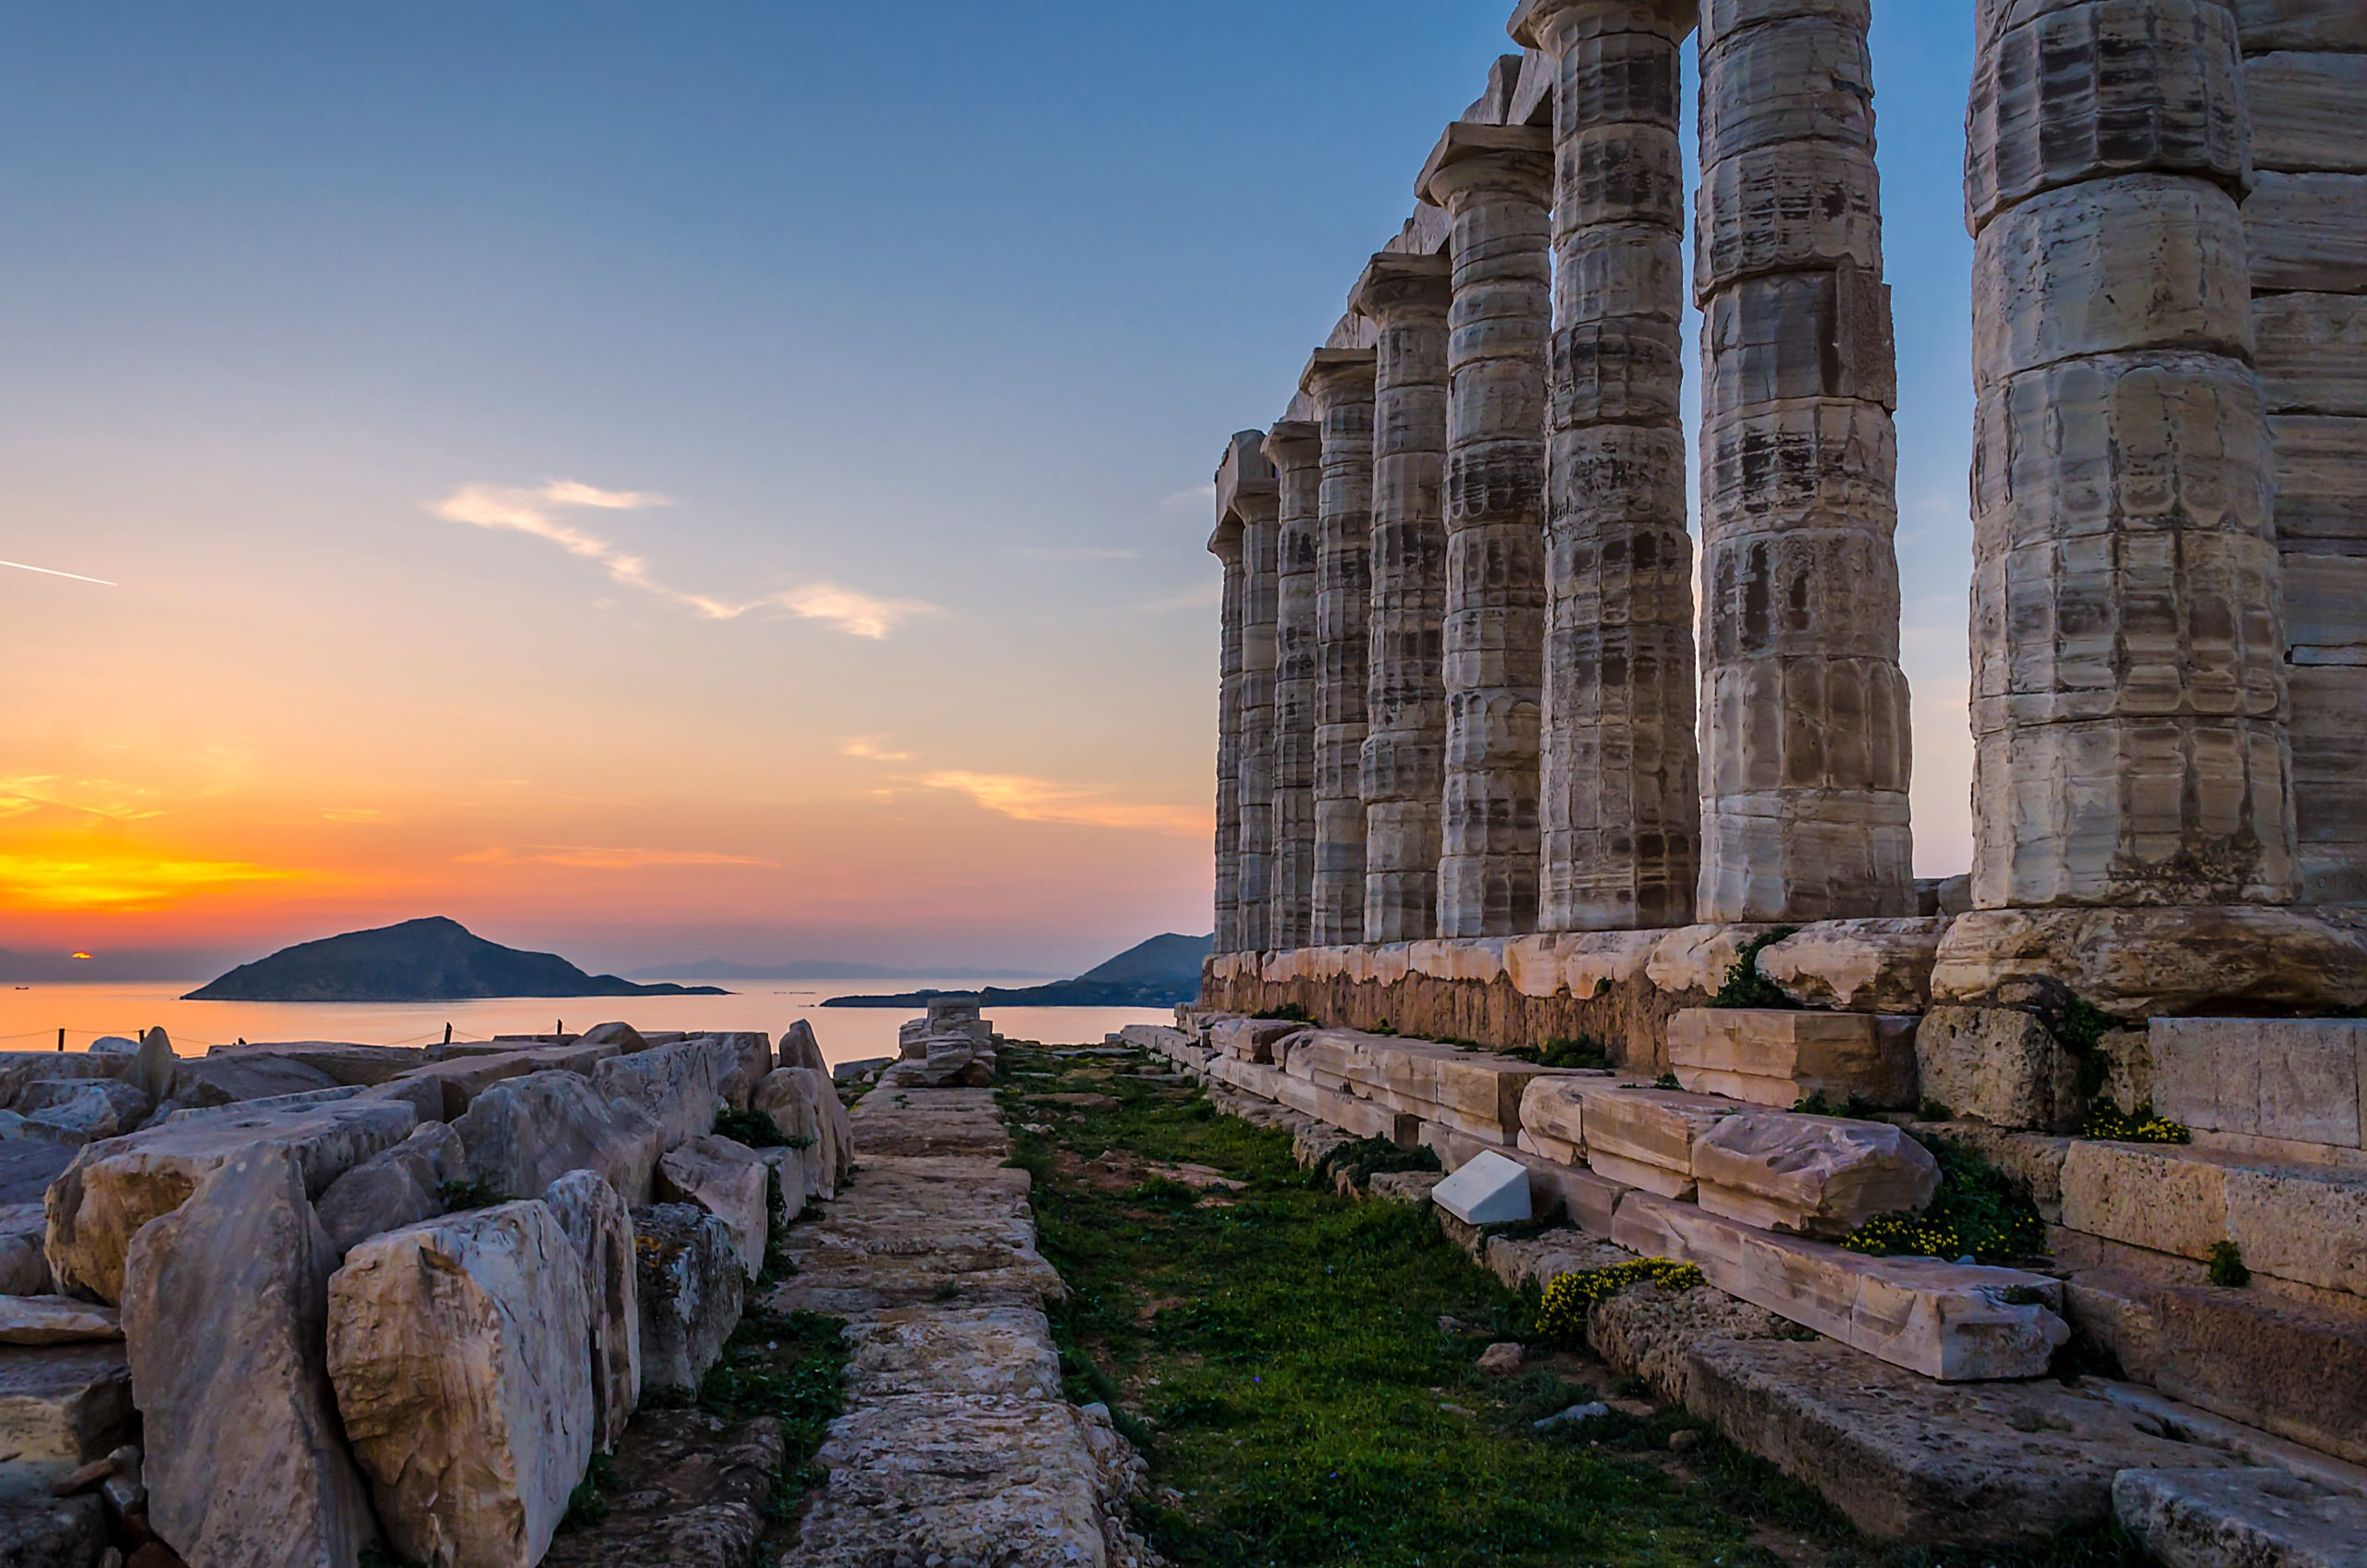 Discover The Temple Of Poseidon On The Sunset Cape Sounio Tour From Athens